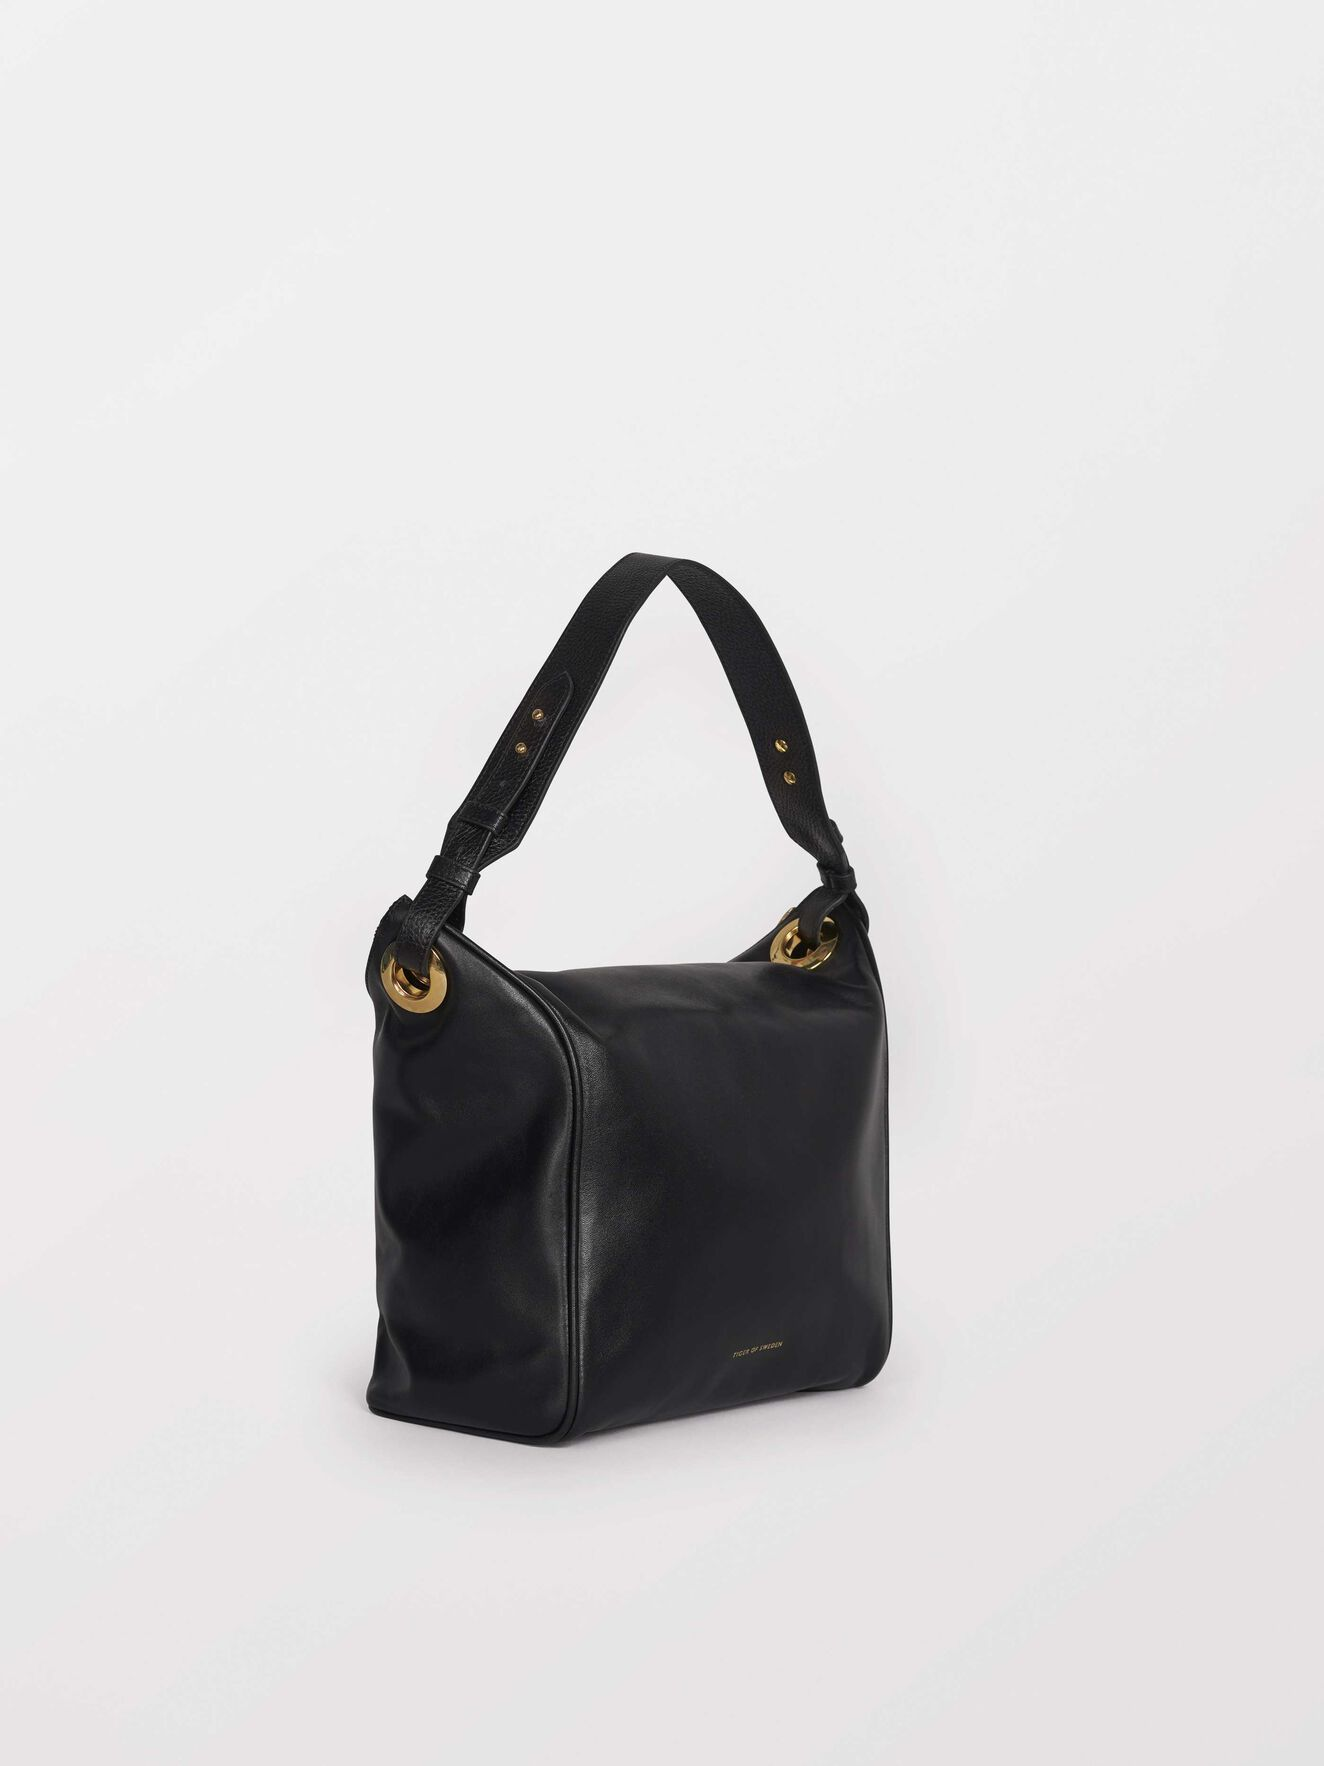 Ockiello Bag in Black from Tiger of Sweden